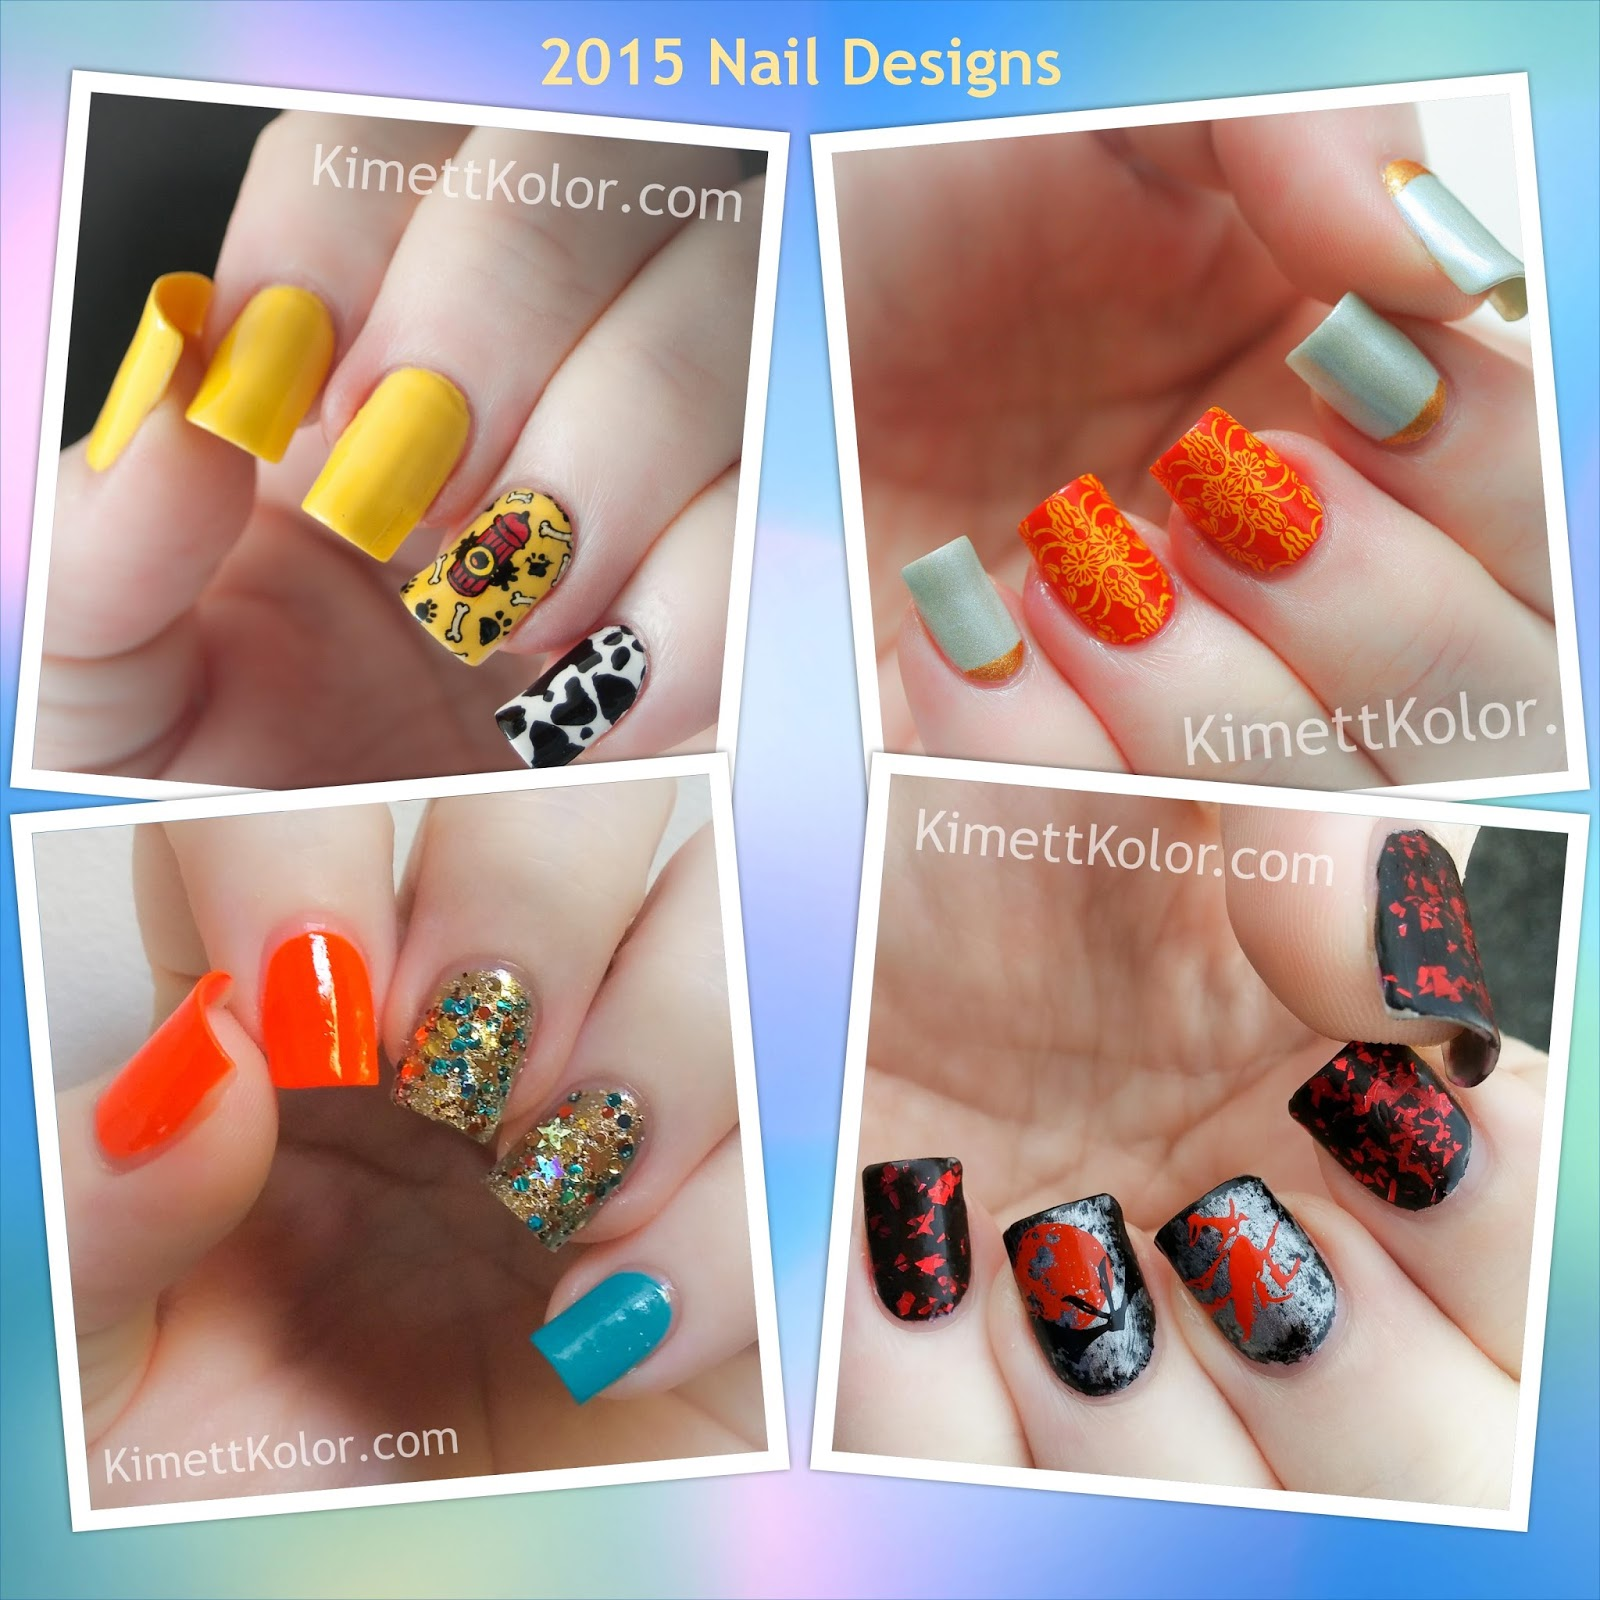 2015 Nail Designs by KimettKolor.com